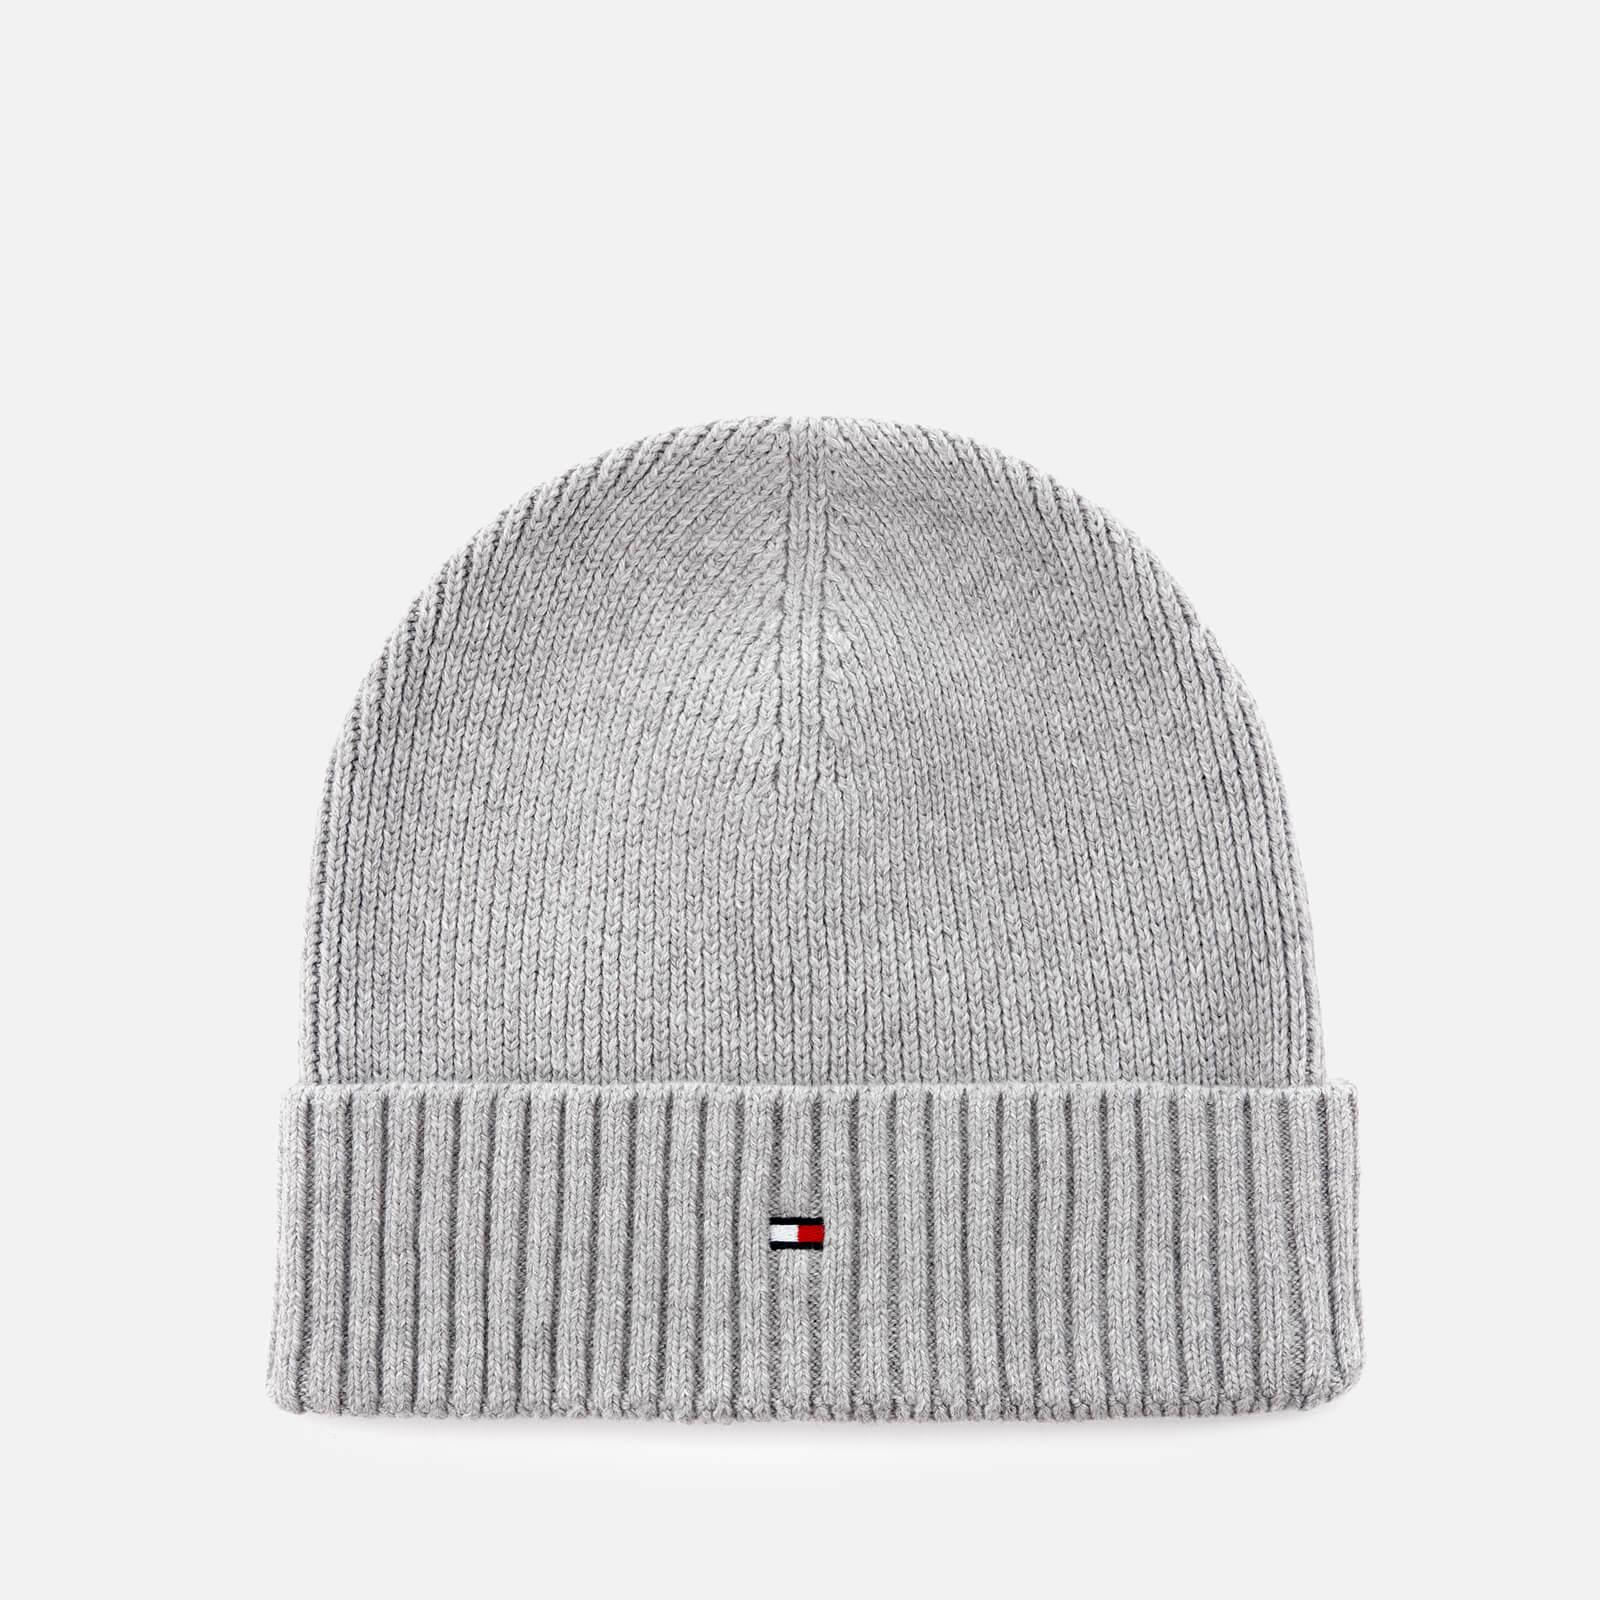 1b12c887 Tommy Hilfiger Pima Cotton Cashmere Beanie in Gray for Men - Lyst